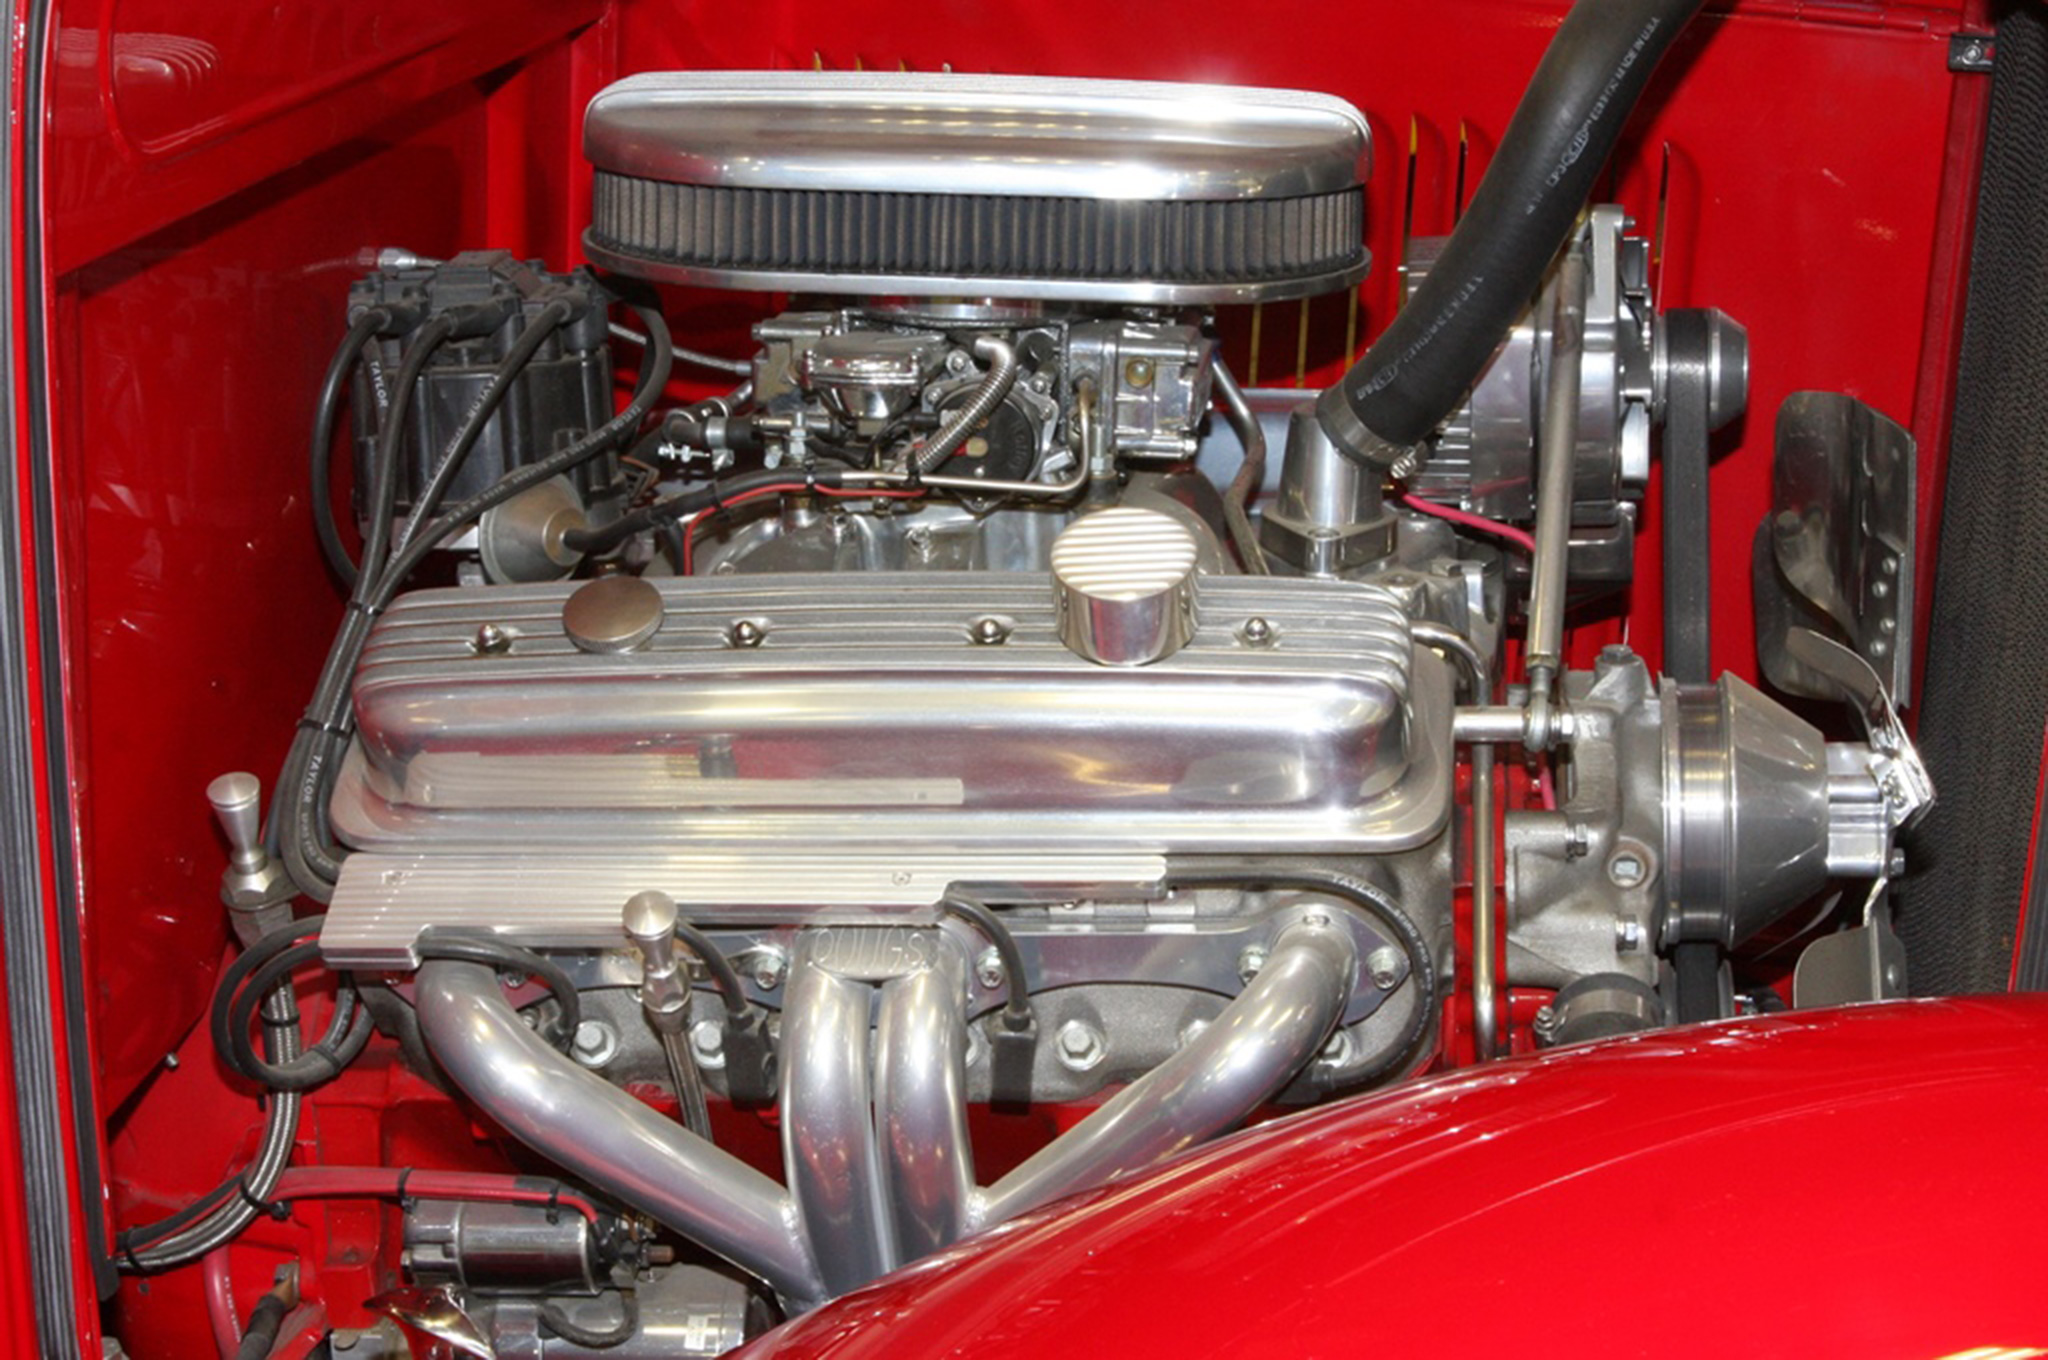 A four-barrel carbureted Chevy 350 with a finned oval air cleaner, finned valve covers, and shorty headers give a '60s look to Gary's Deuce. A TH350 transmission backs up the small-block.